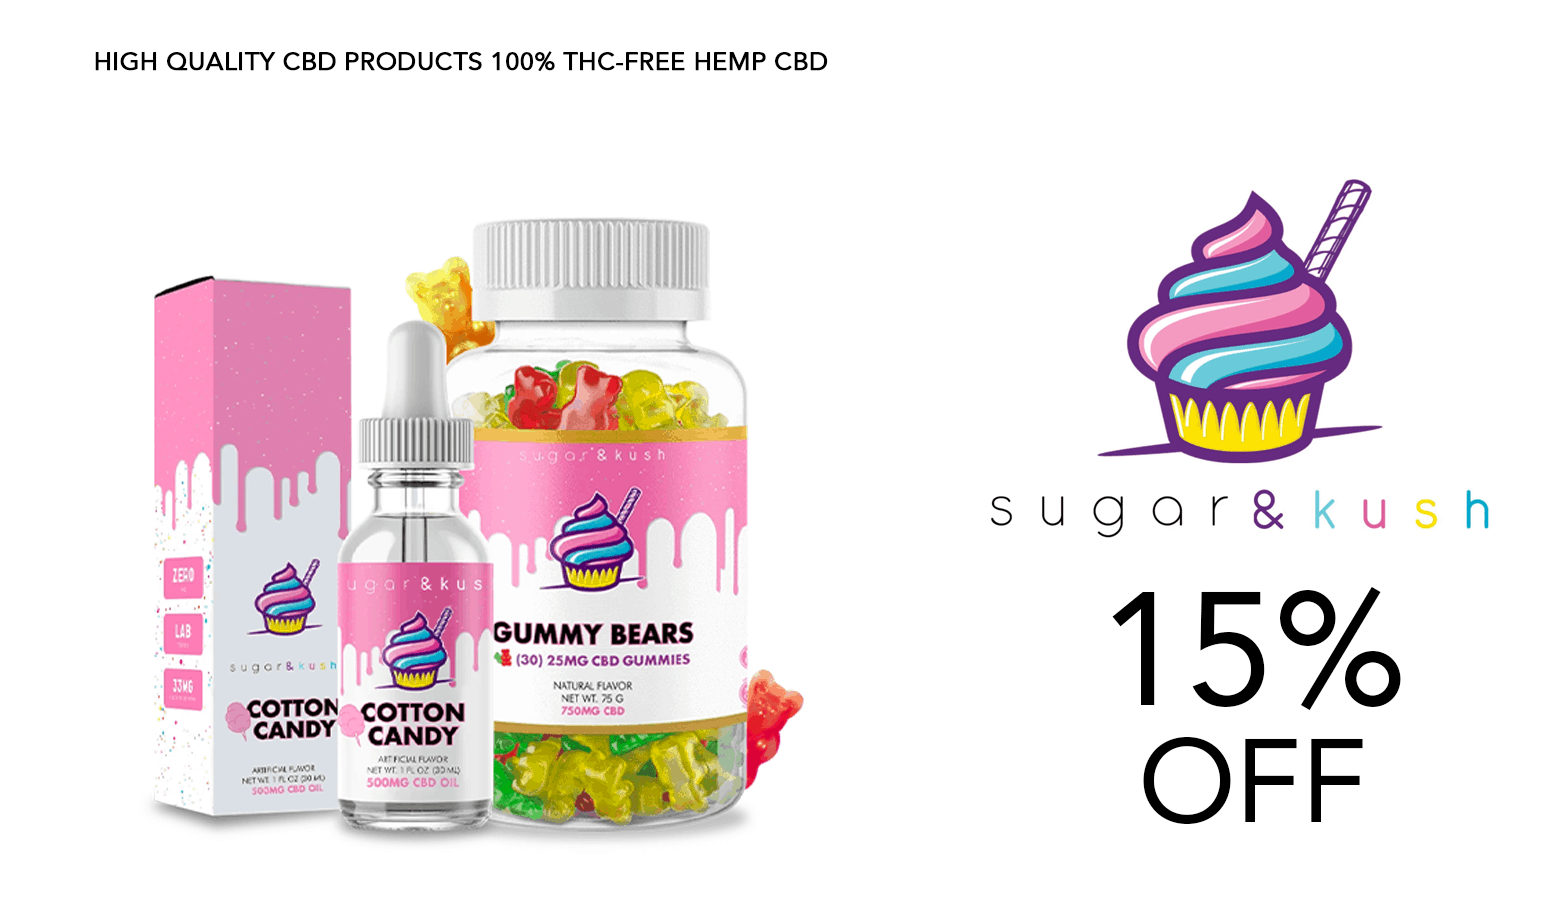 Sugar and Kush CBD Coupon Code Offer Website